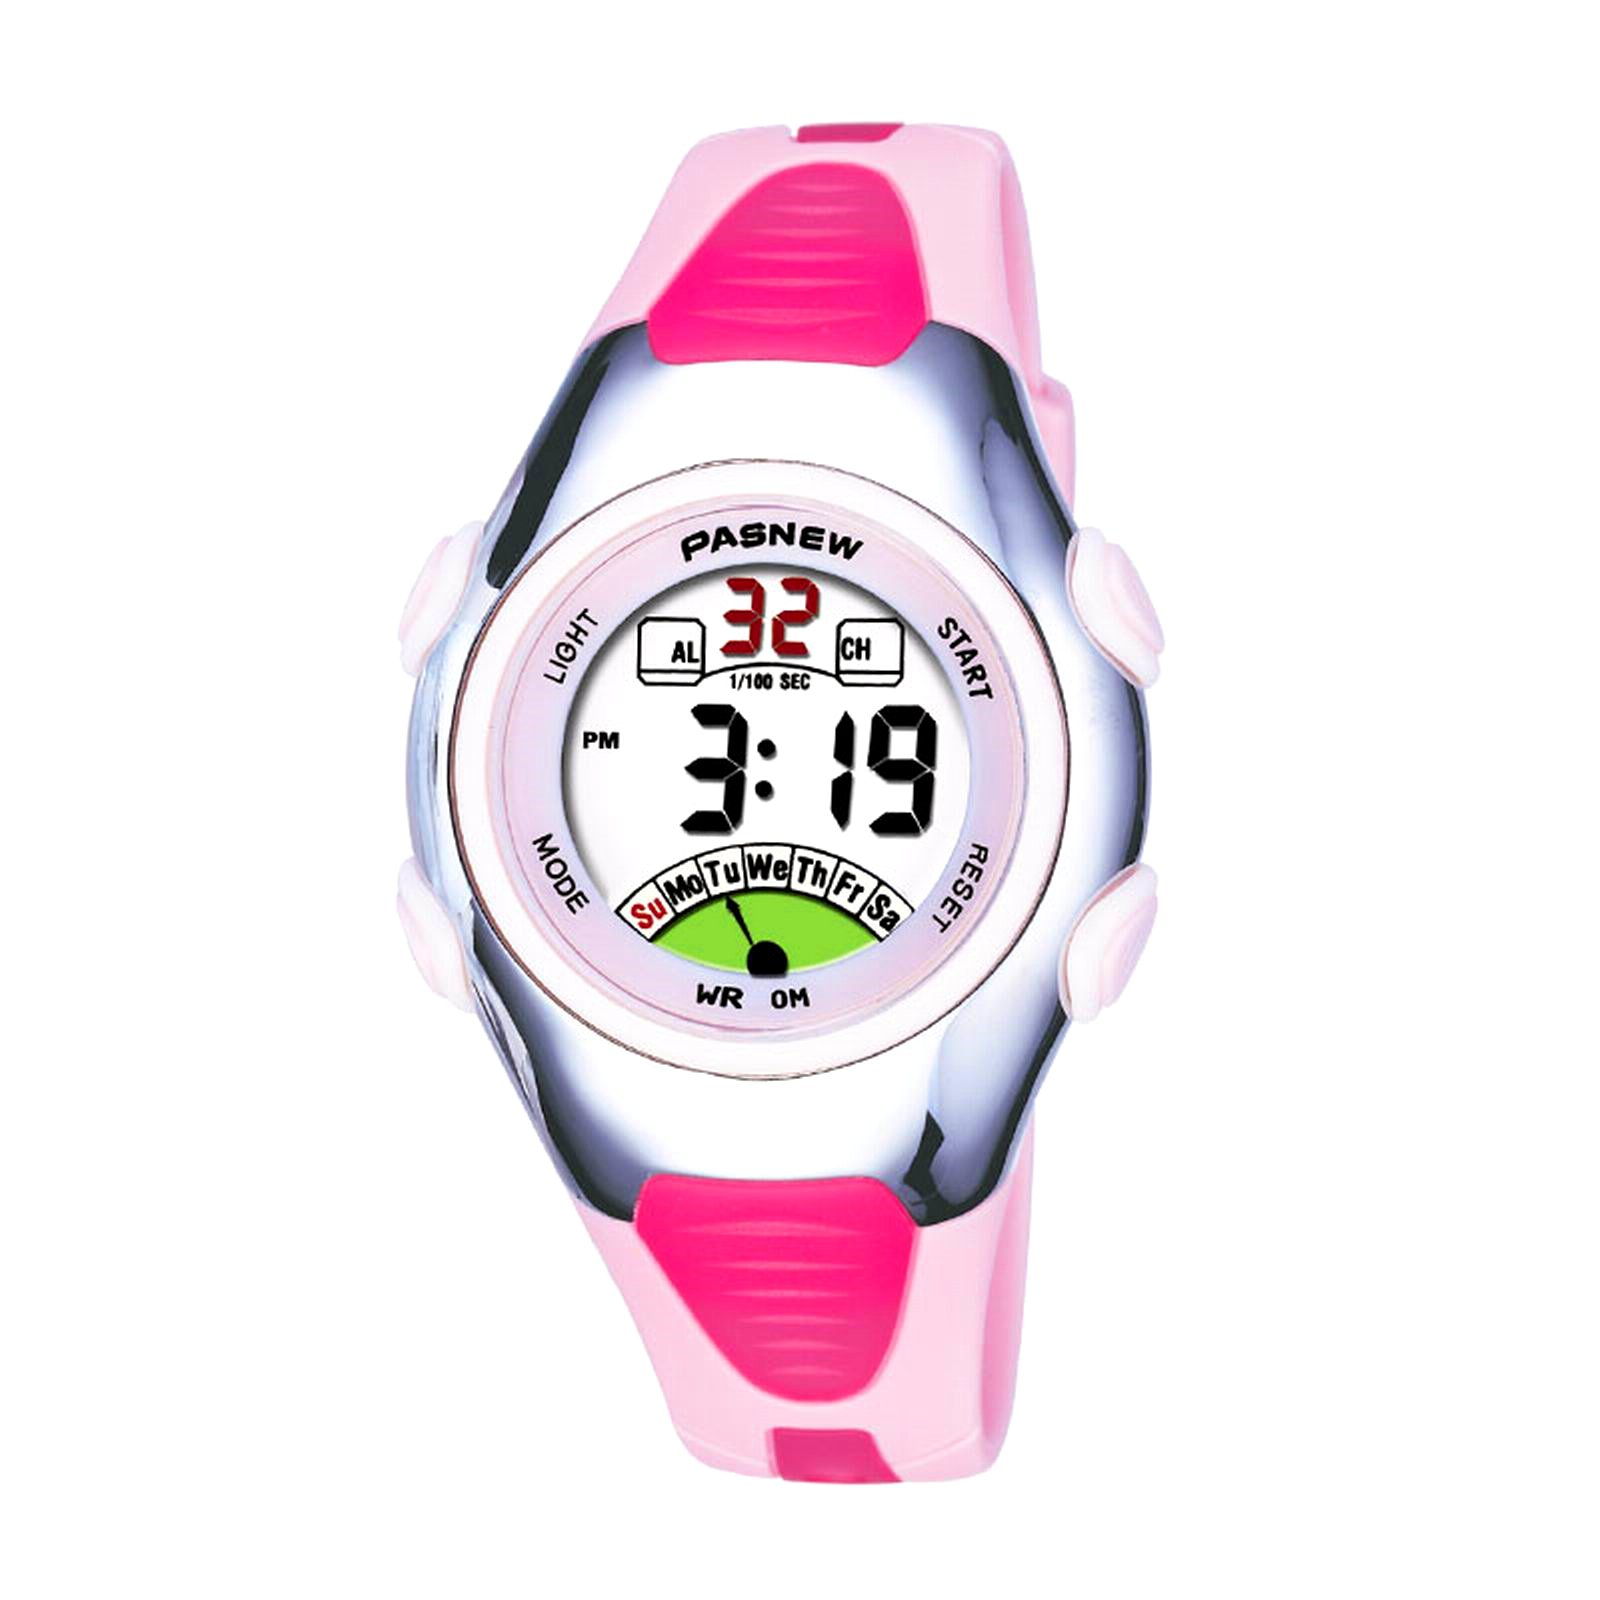 Pasnew Kids Digital or Analog Watch for Girls Watch Child Watch Kids Watch Quartz Watch Wrist Watch